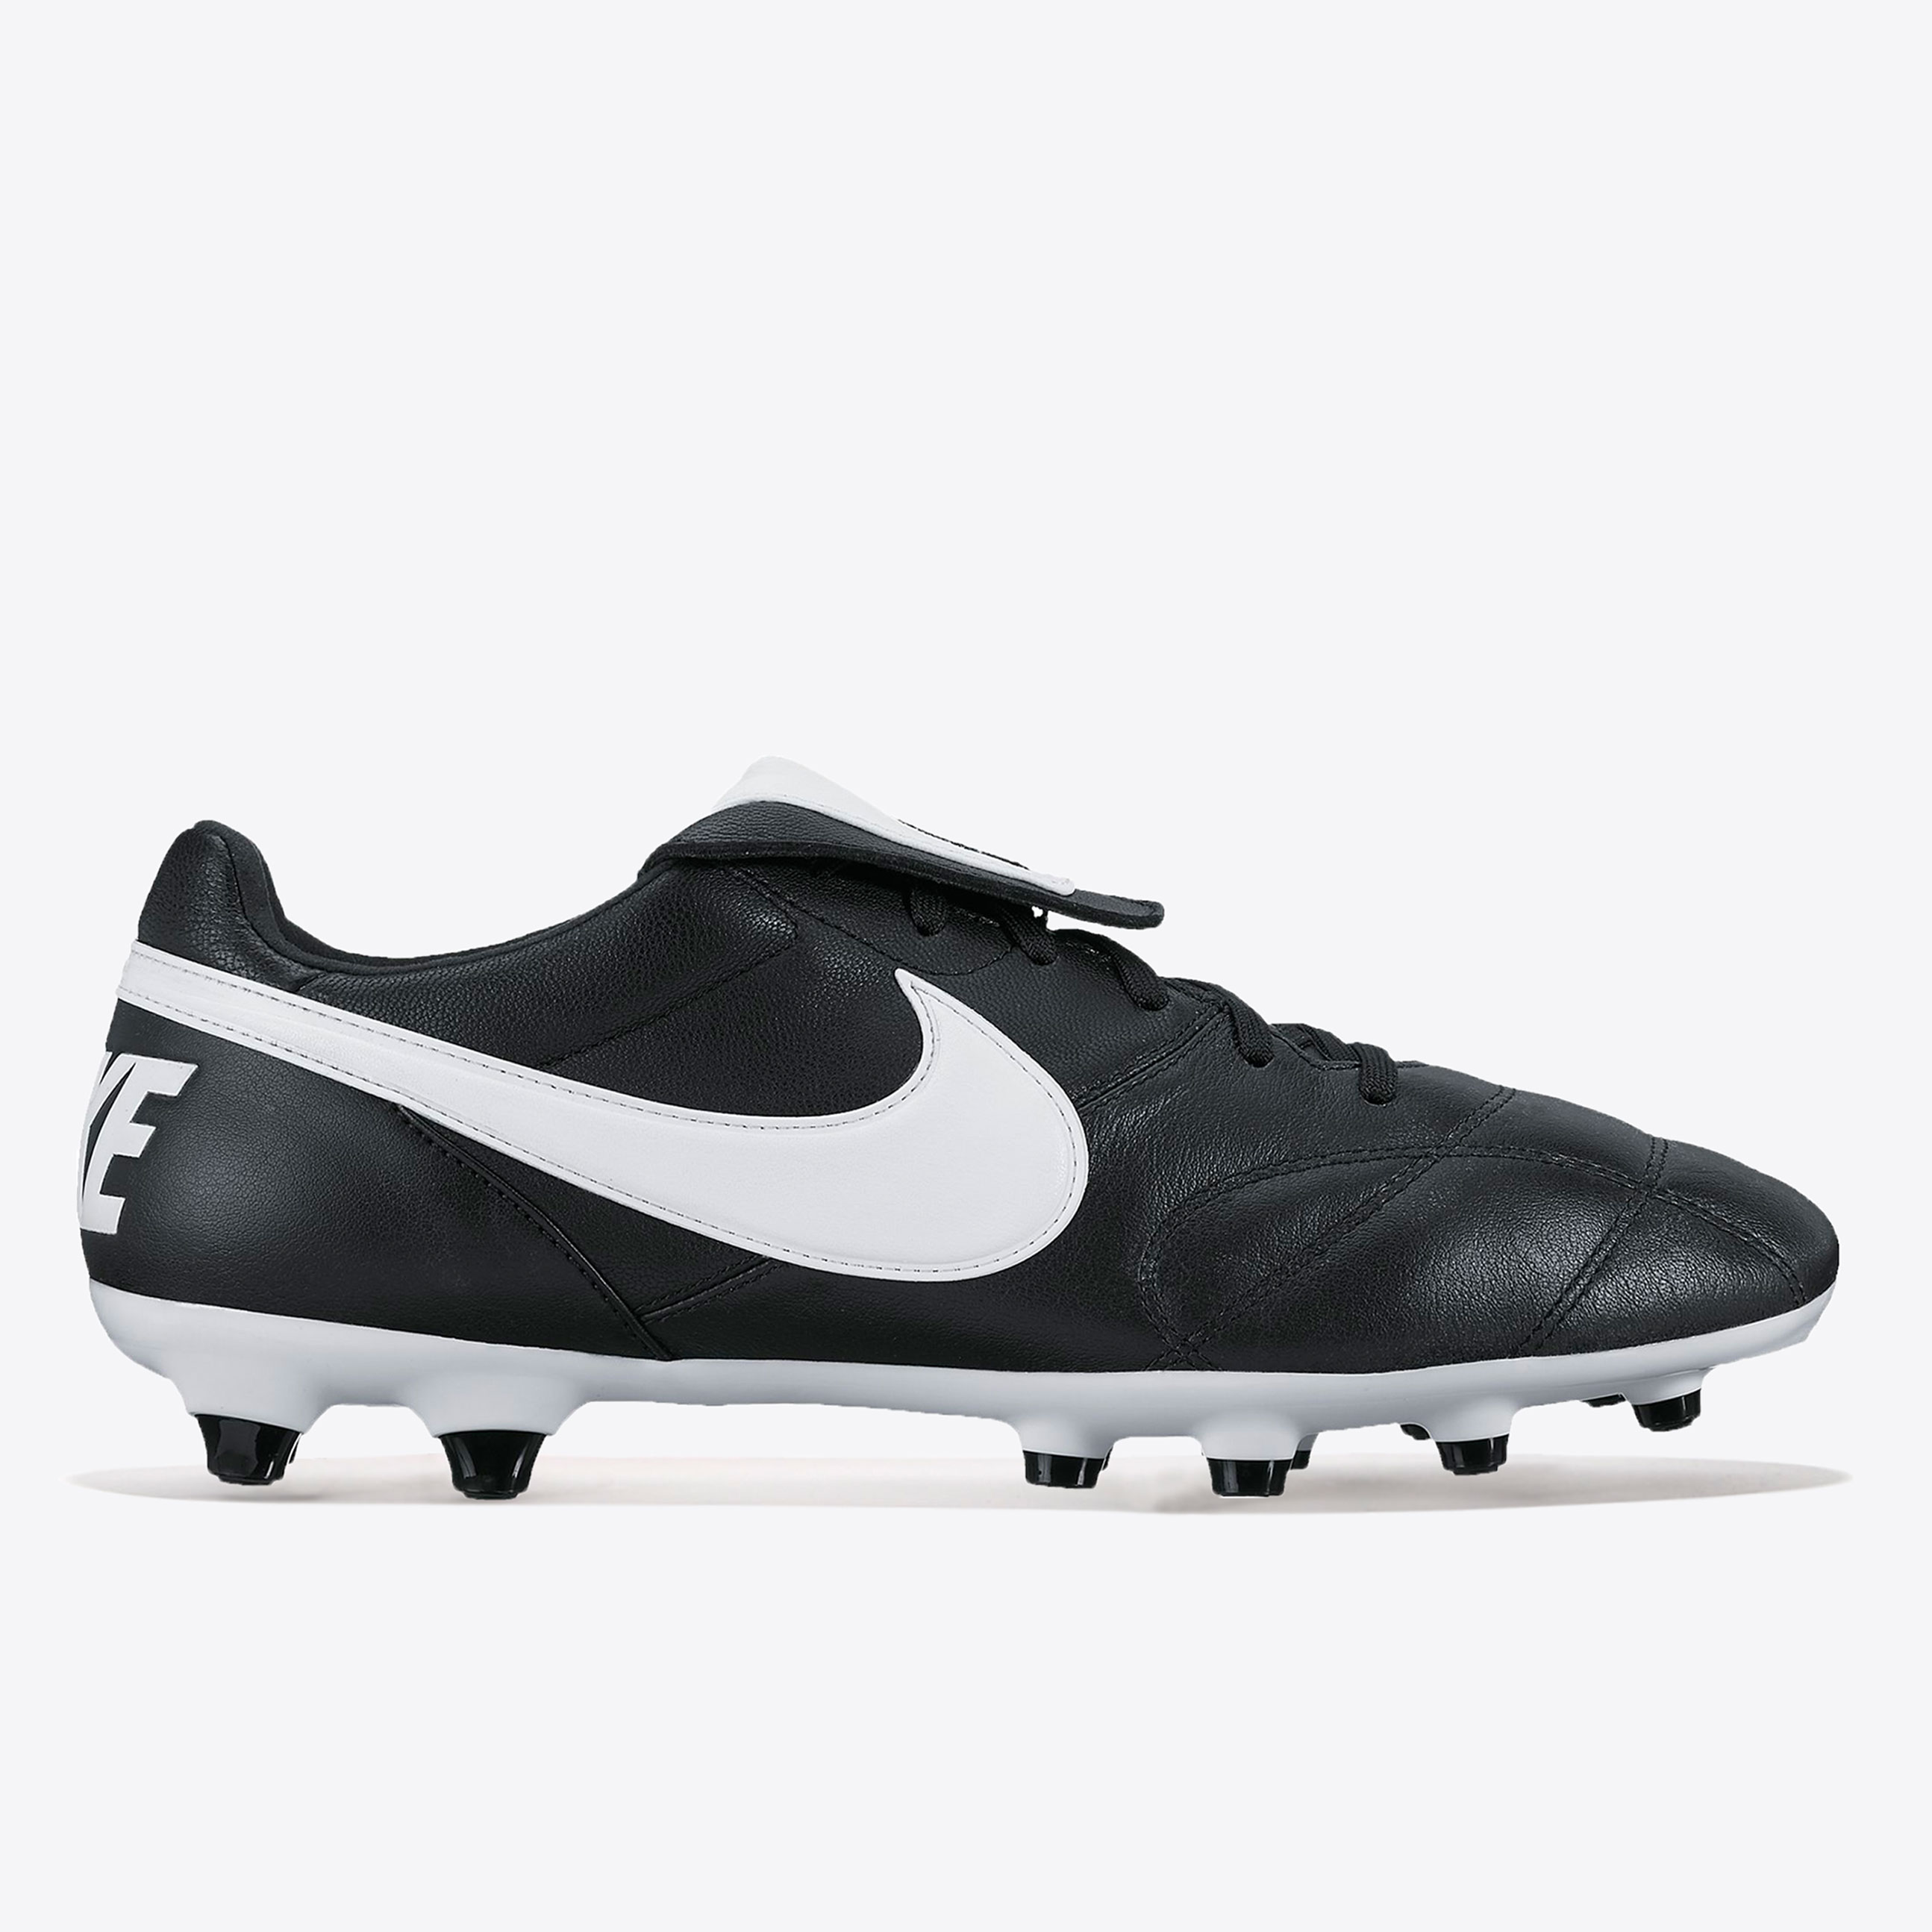 Nike Premier II Firm Ground Football Boots - Black/White/Black